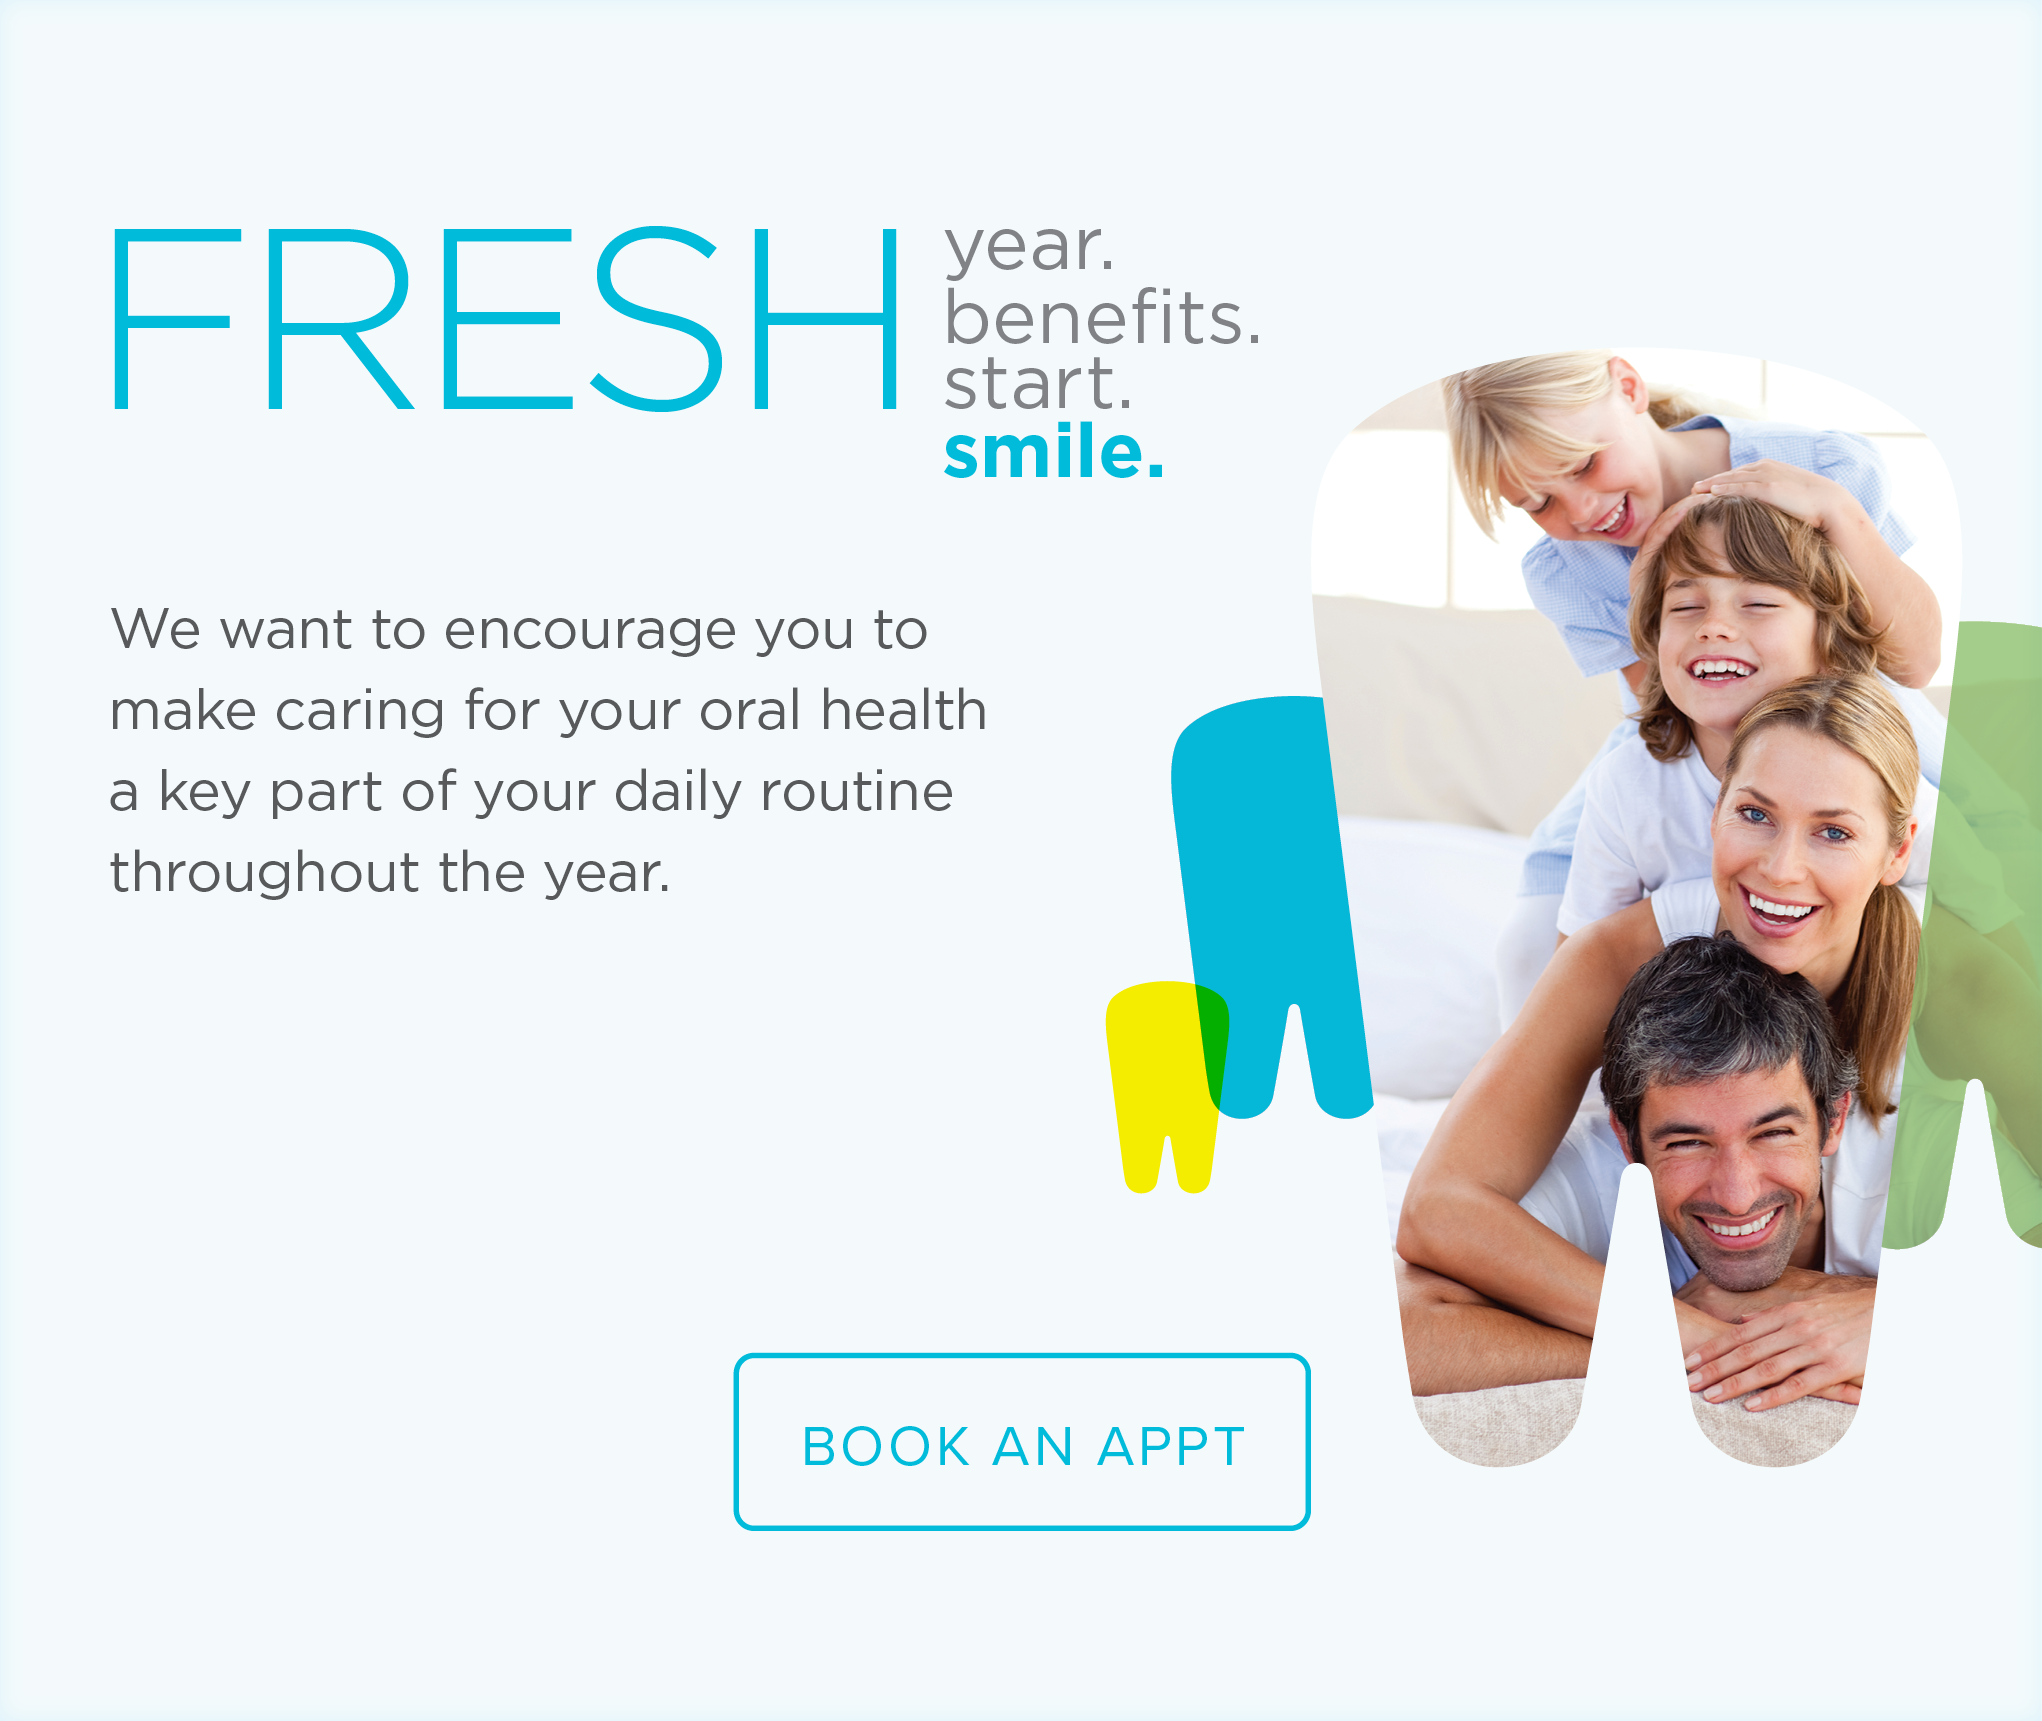 Arrowhead Dental Group and Orthodontics - Make the Most of Your Benefits